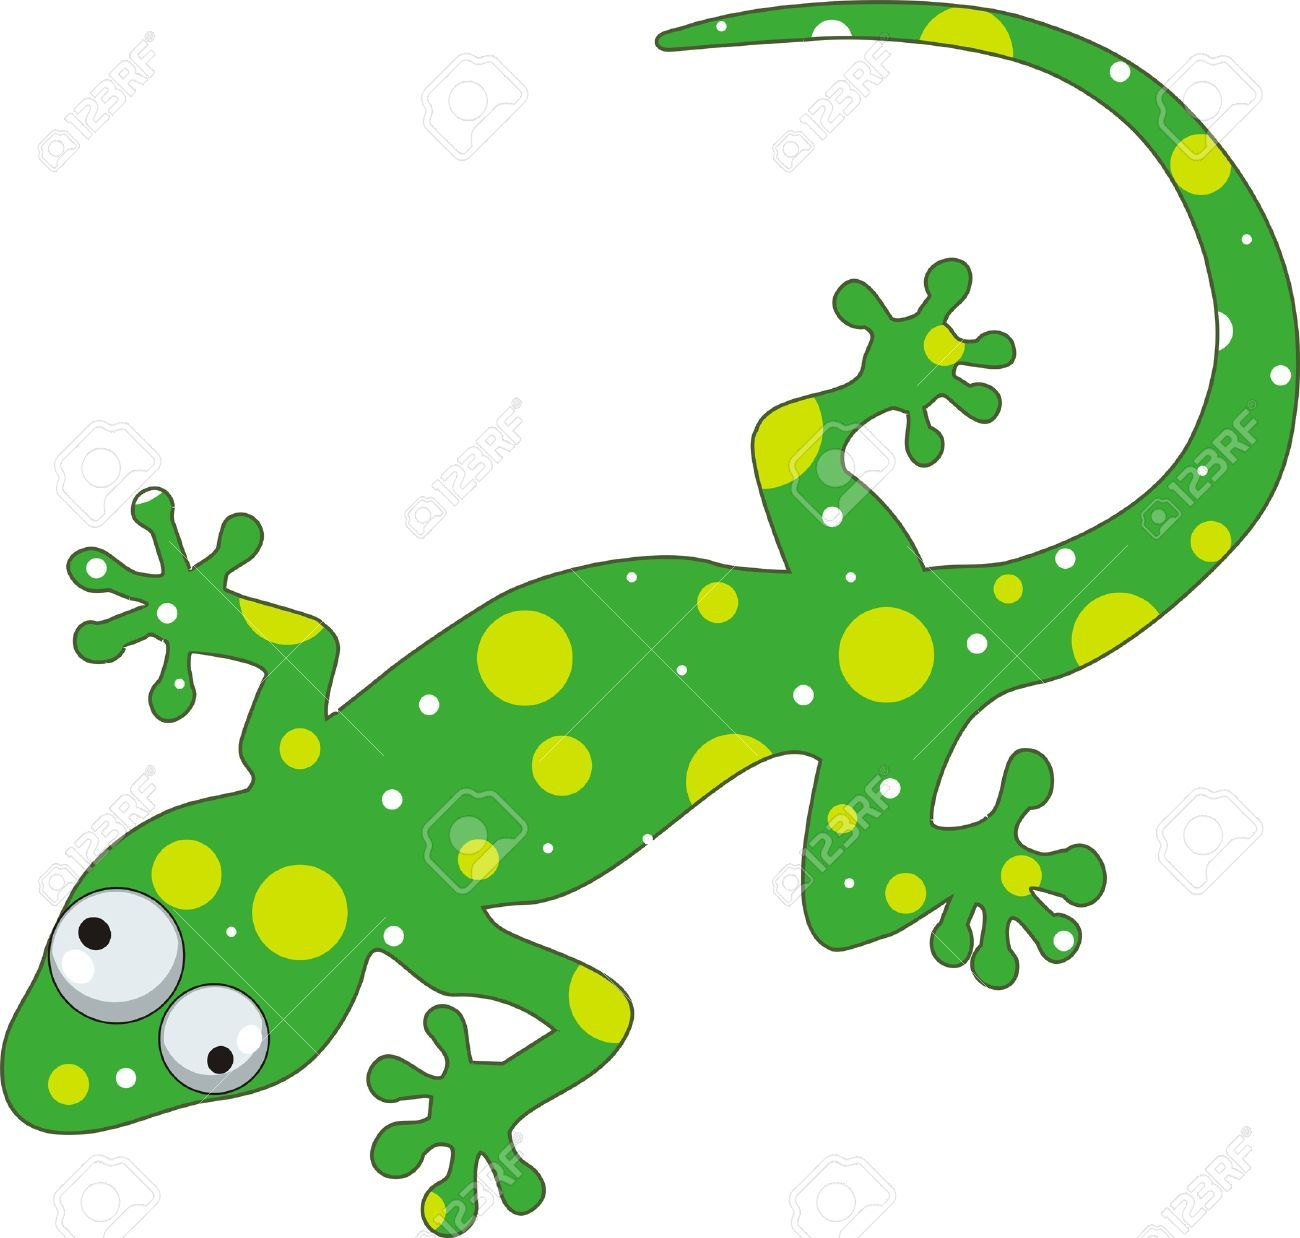 Chameleon cliparts stock vector. Lizard clipart